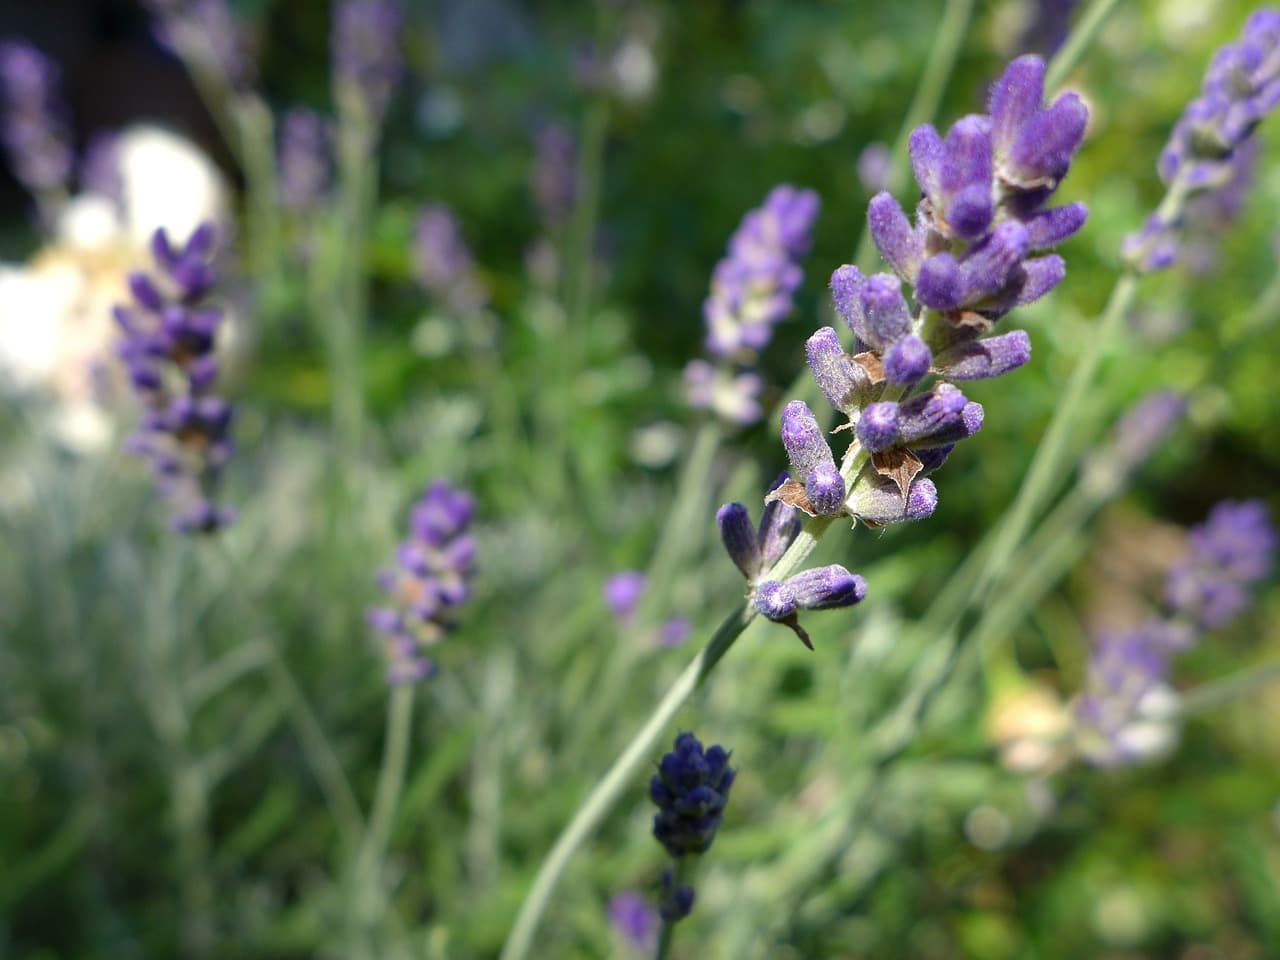 Munstead - A variety of lavender that is often used for cooking.